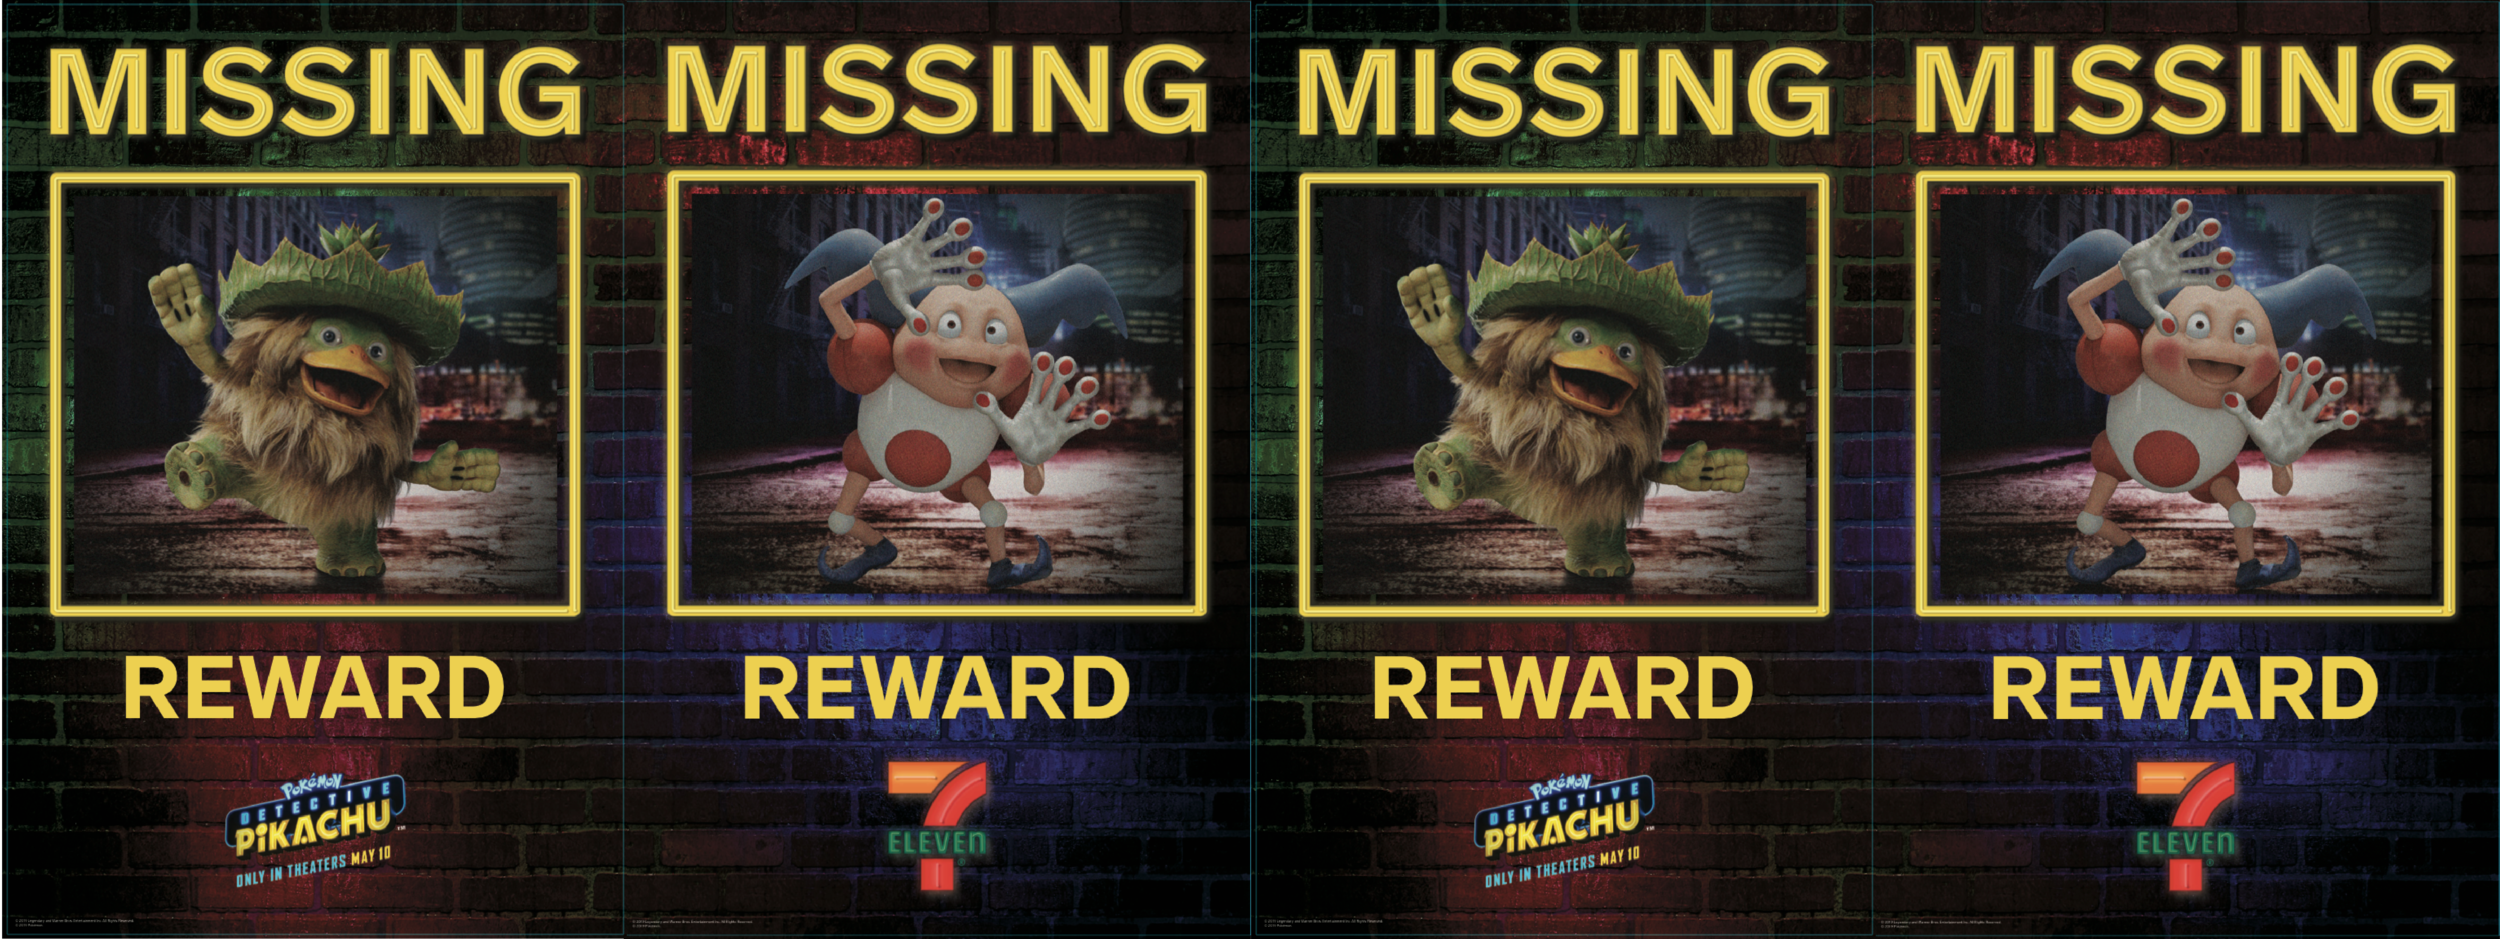 Missing Posters-01.png